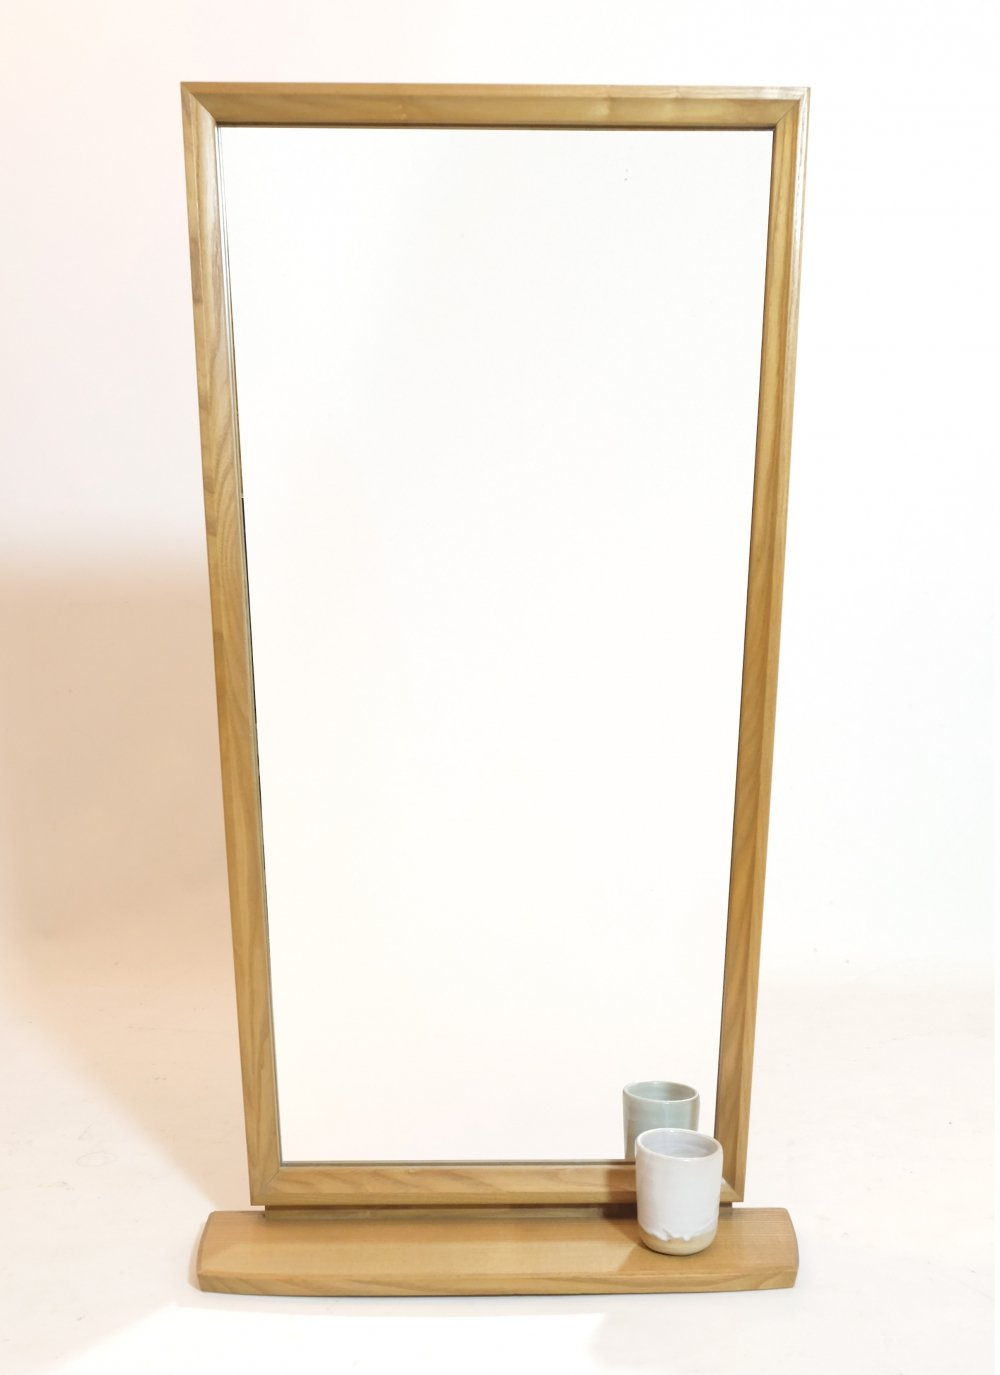 Large mirror with a shelf, 1960s